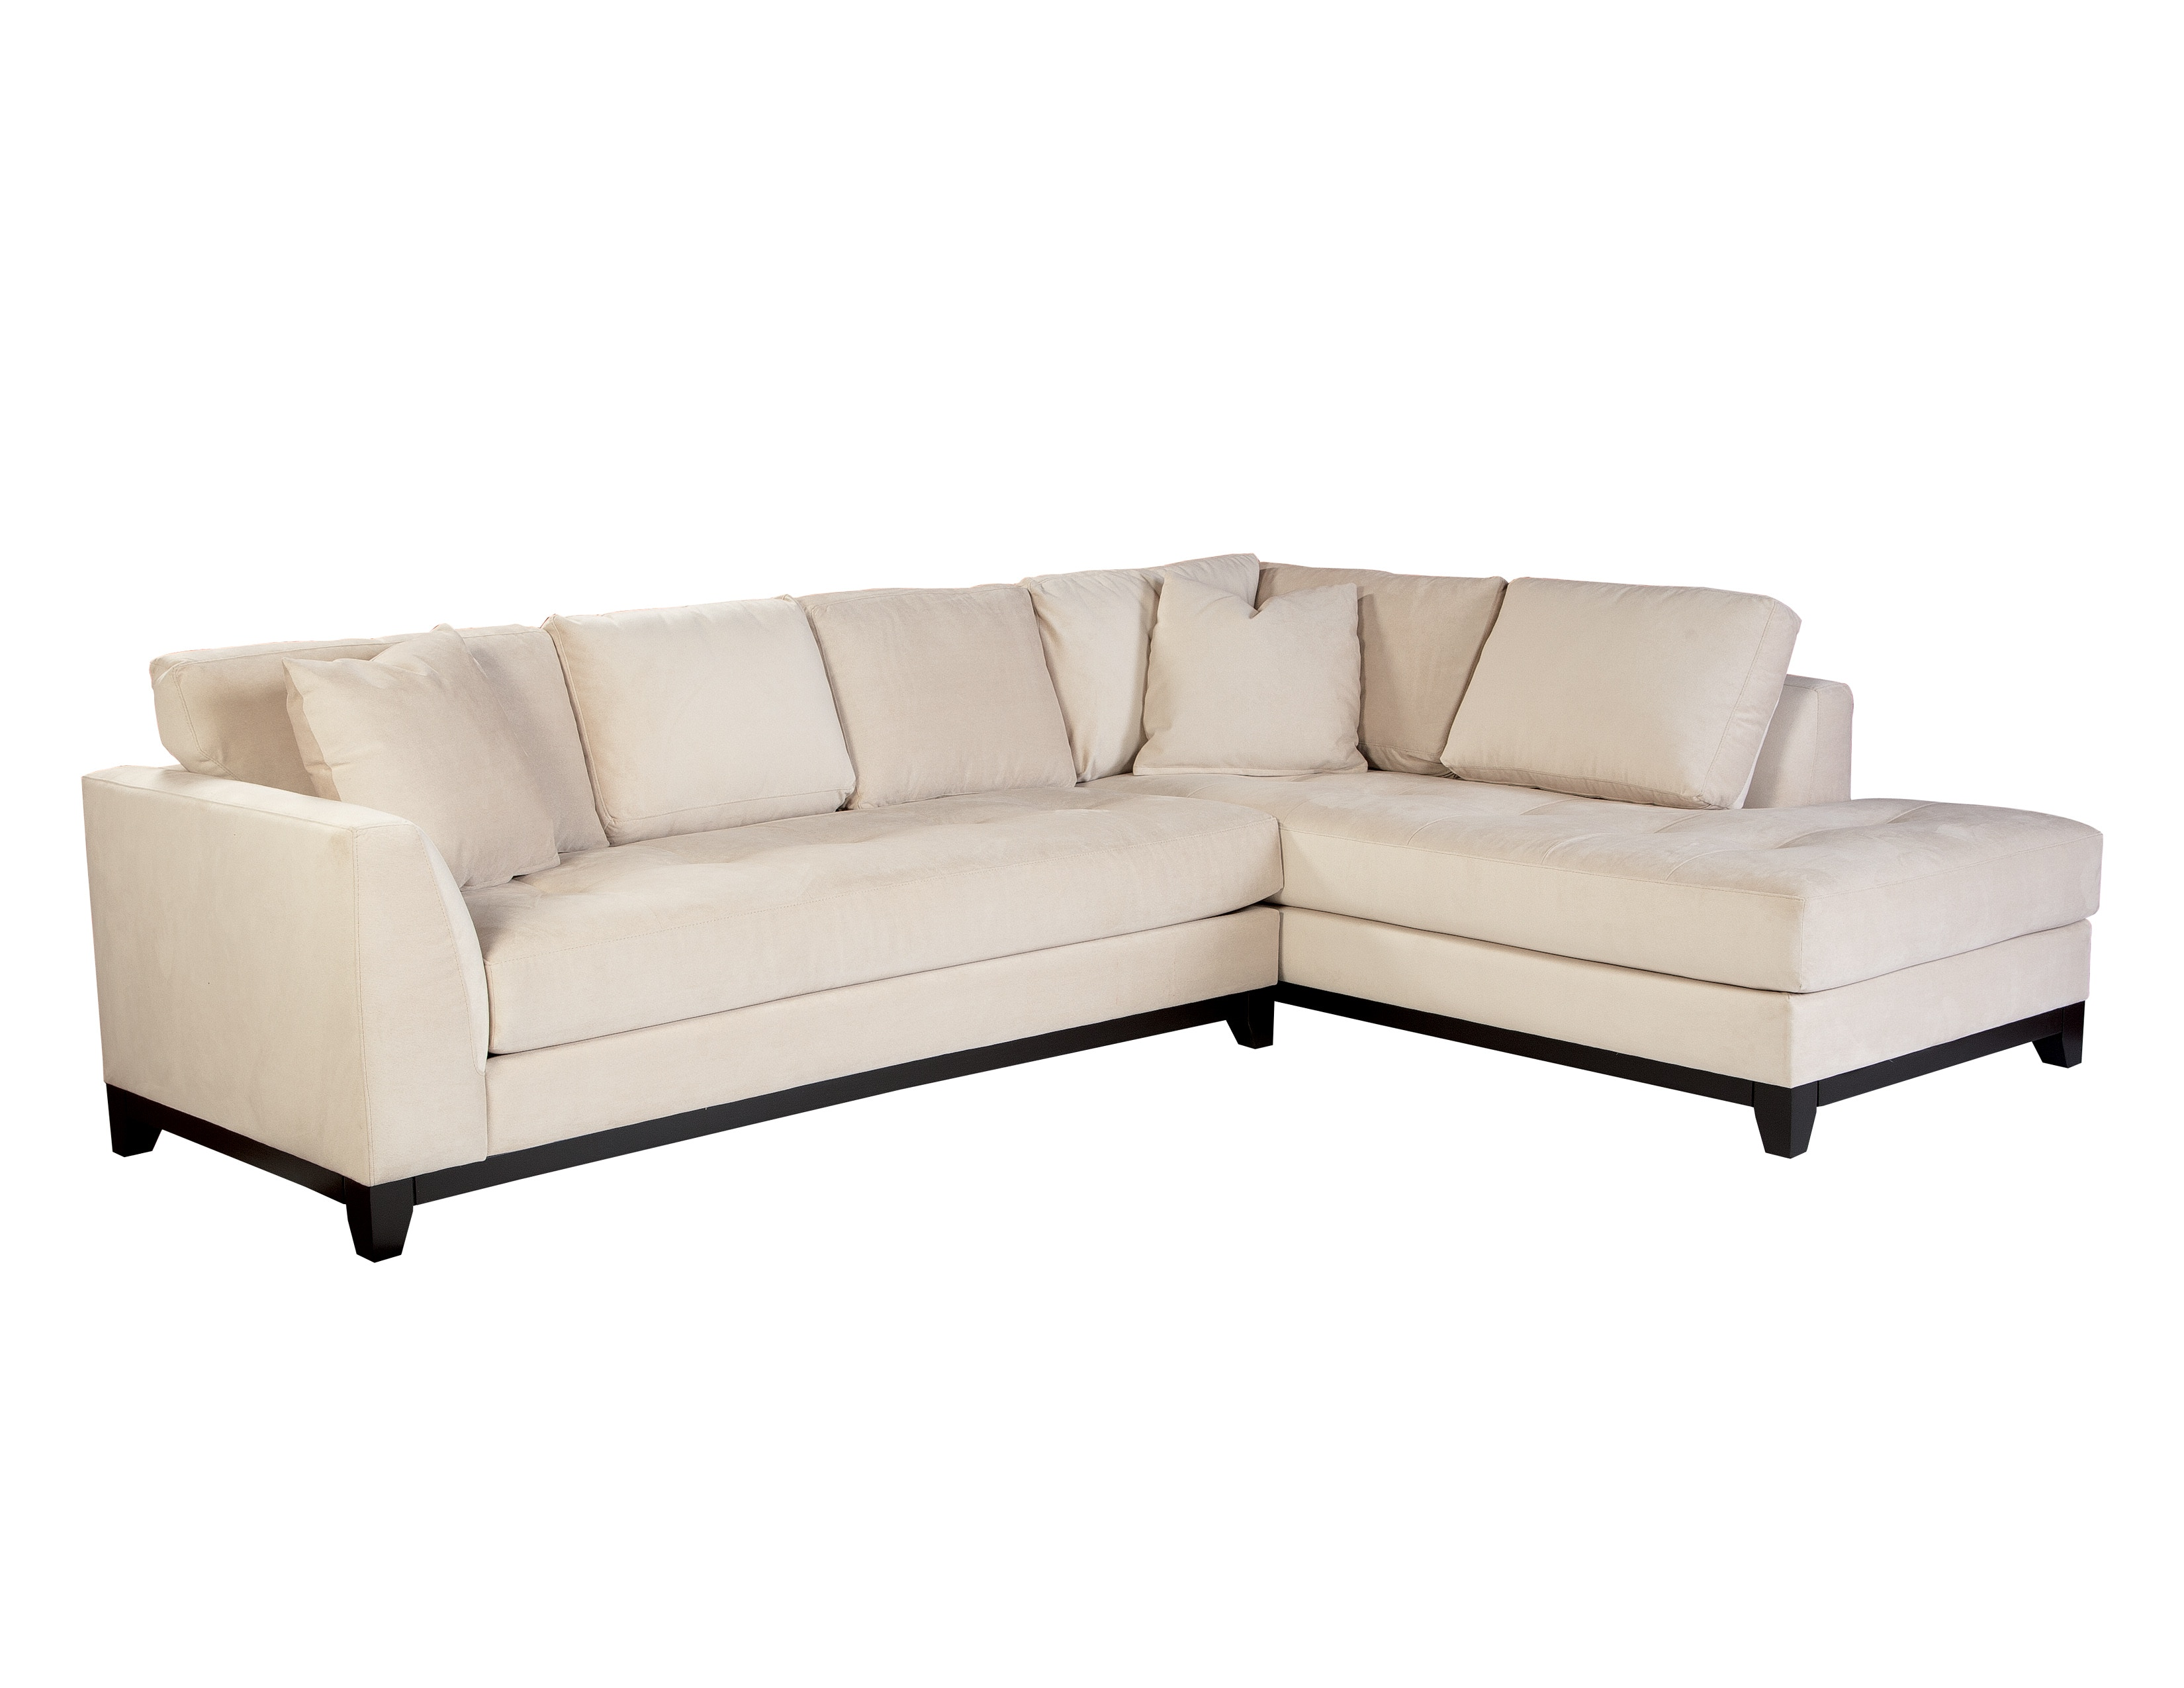 sectional sofa dallas fort worth small with chaise and ottoman jonathan louis international living room julian